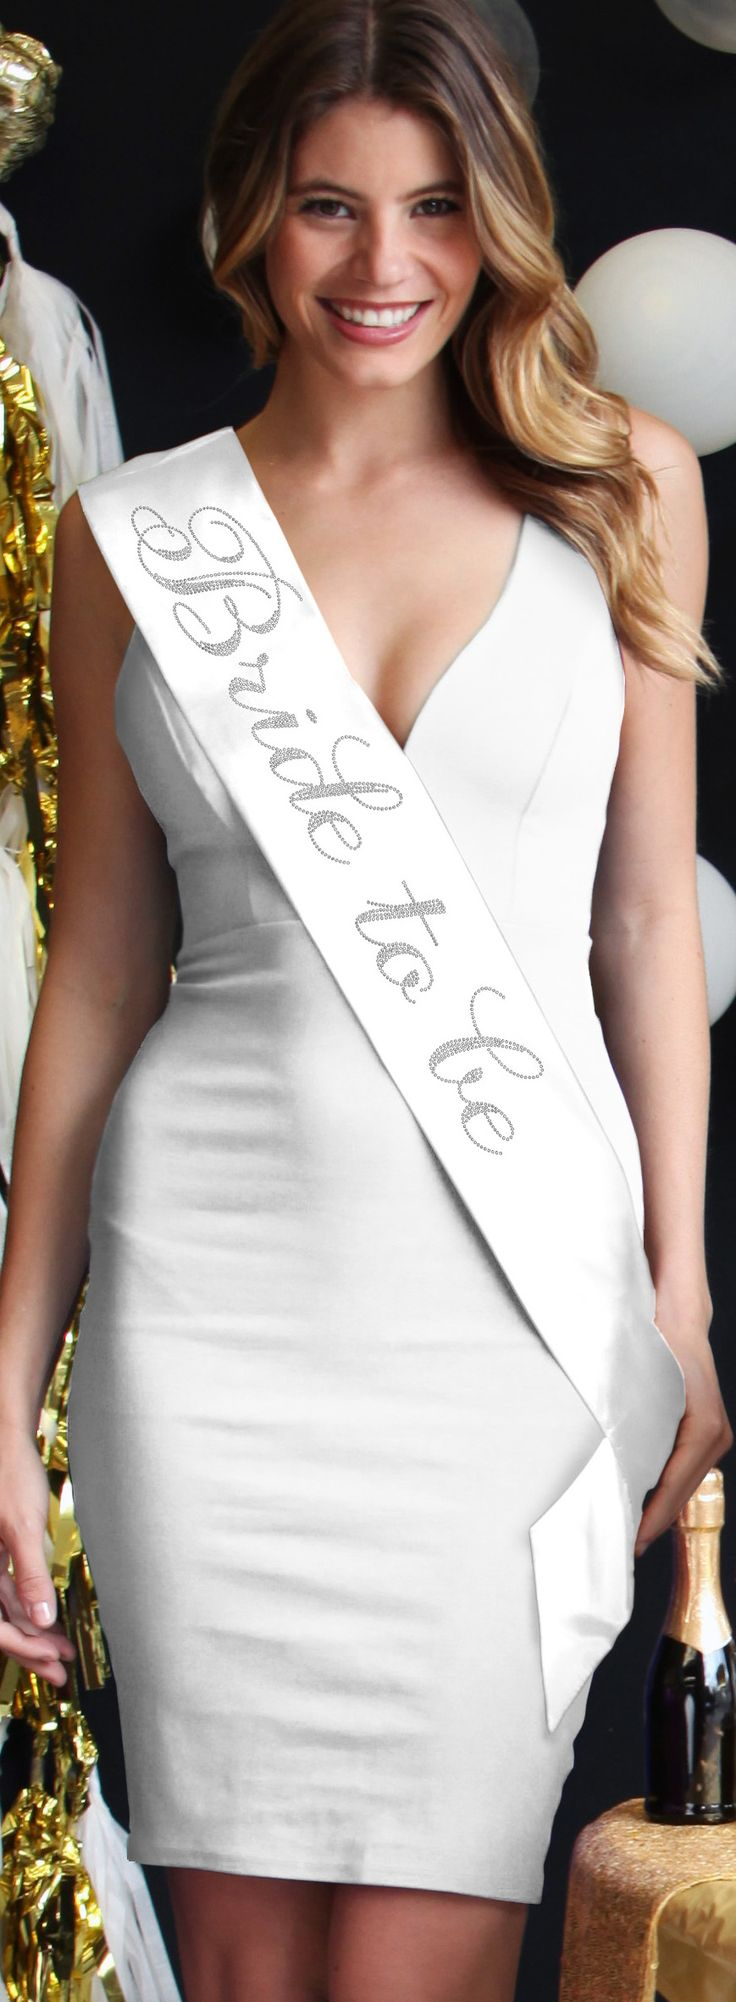 Tousles waves and a rhinestone Bride sash make this Bride to be a standout!